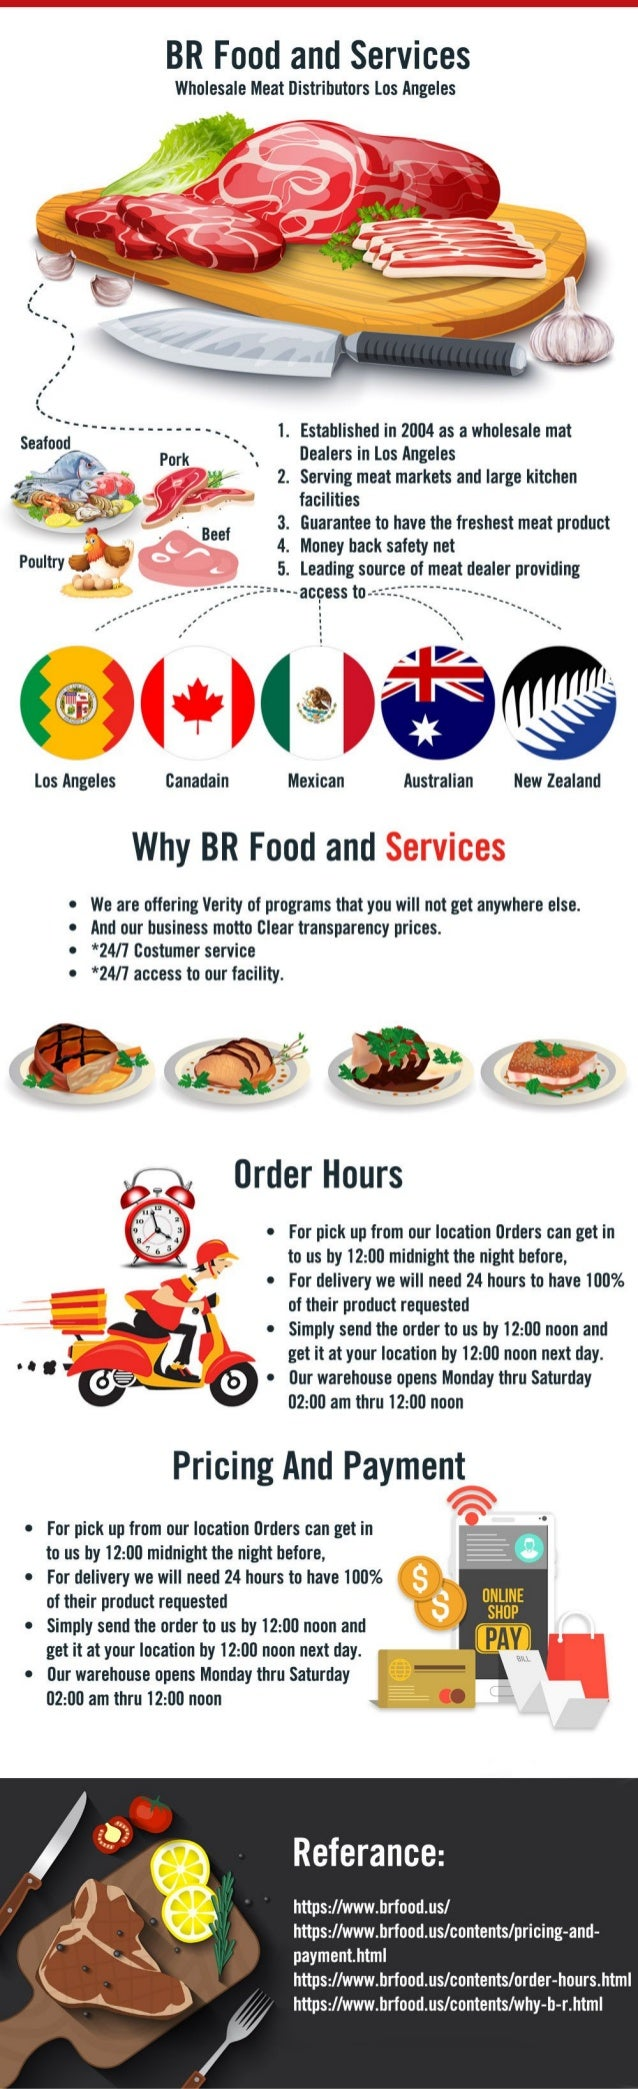 BR Food and Services - Wholesale Meat Distributors Los Angeles